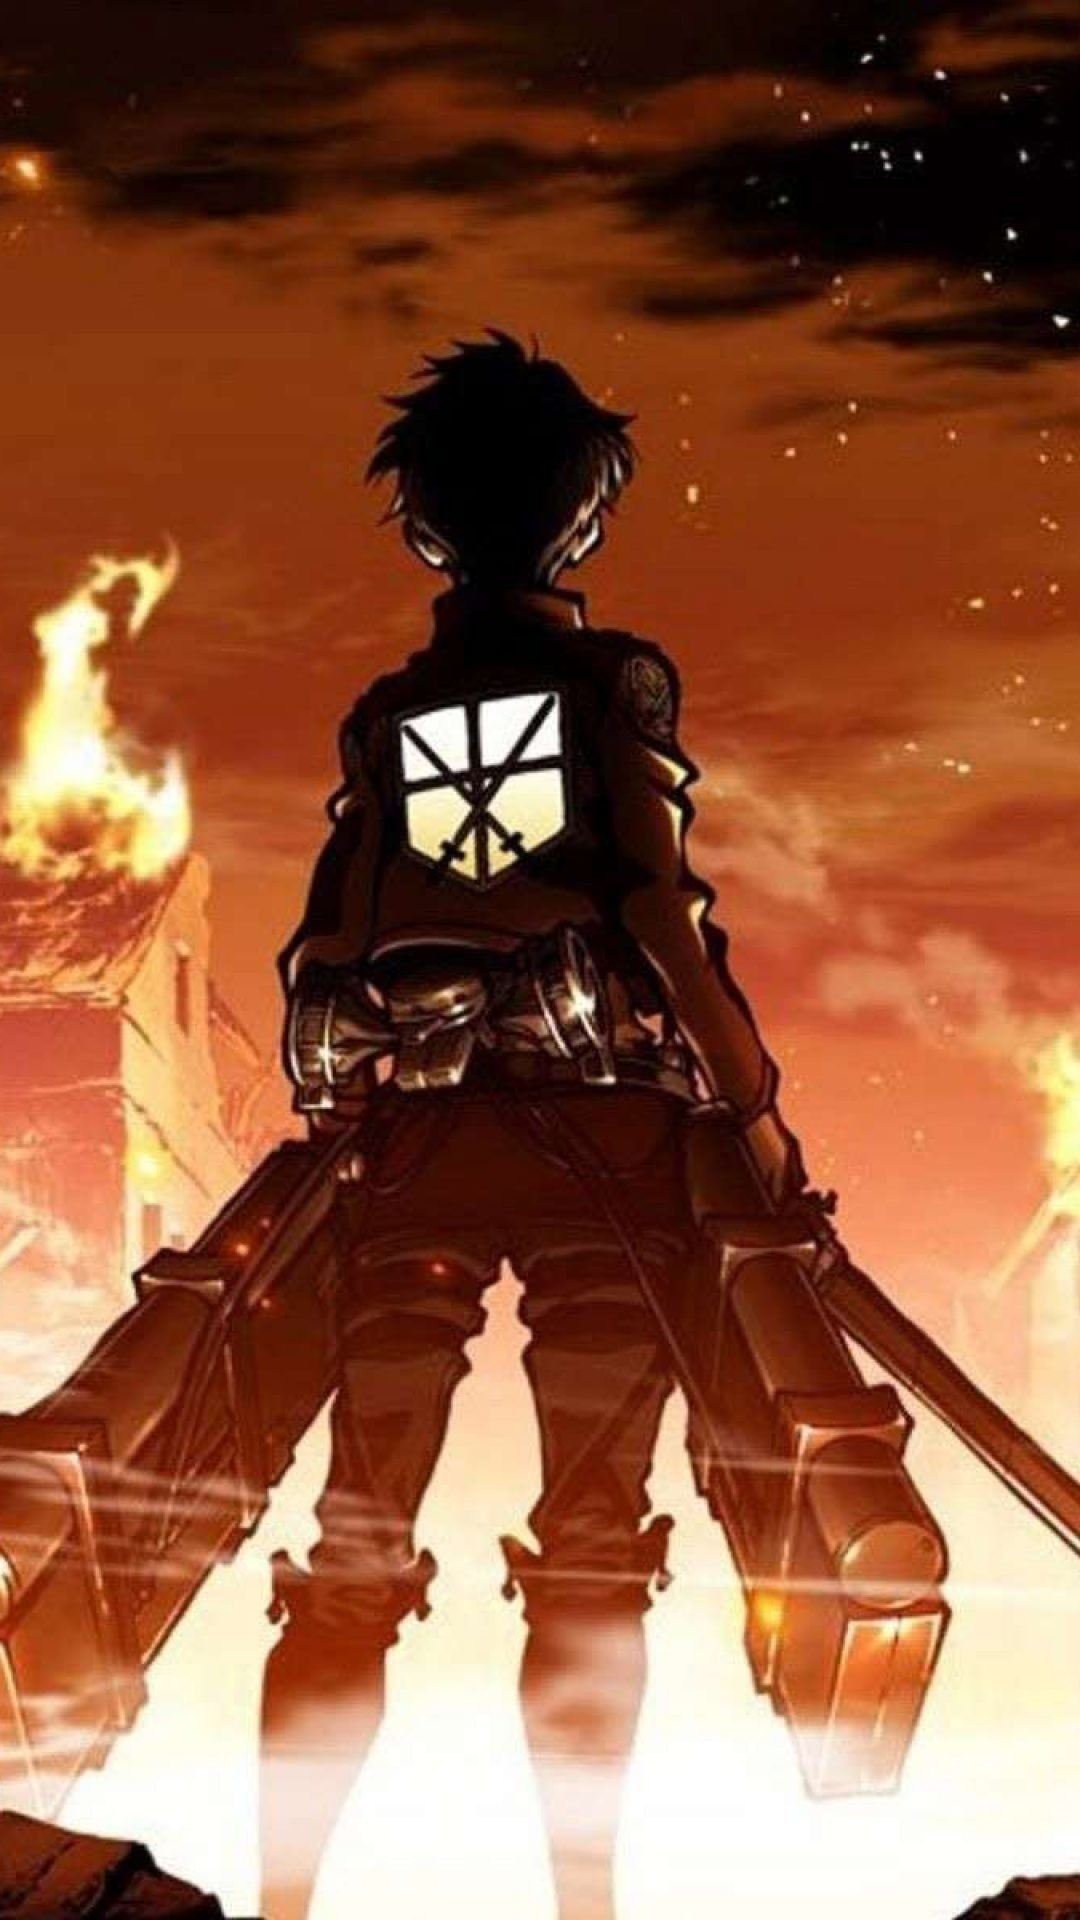 Here's how to set it up. Attack on Titan Wallpaper HD (64+ images)